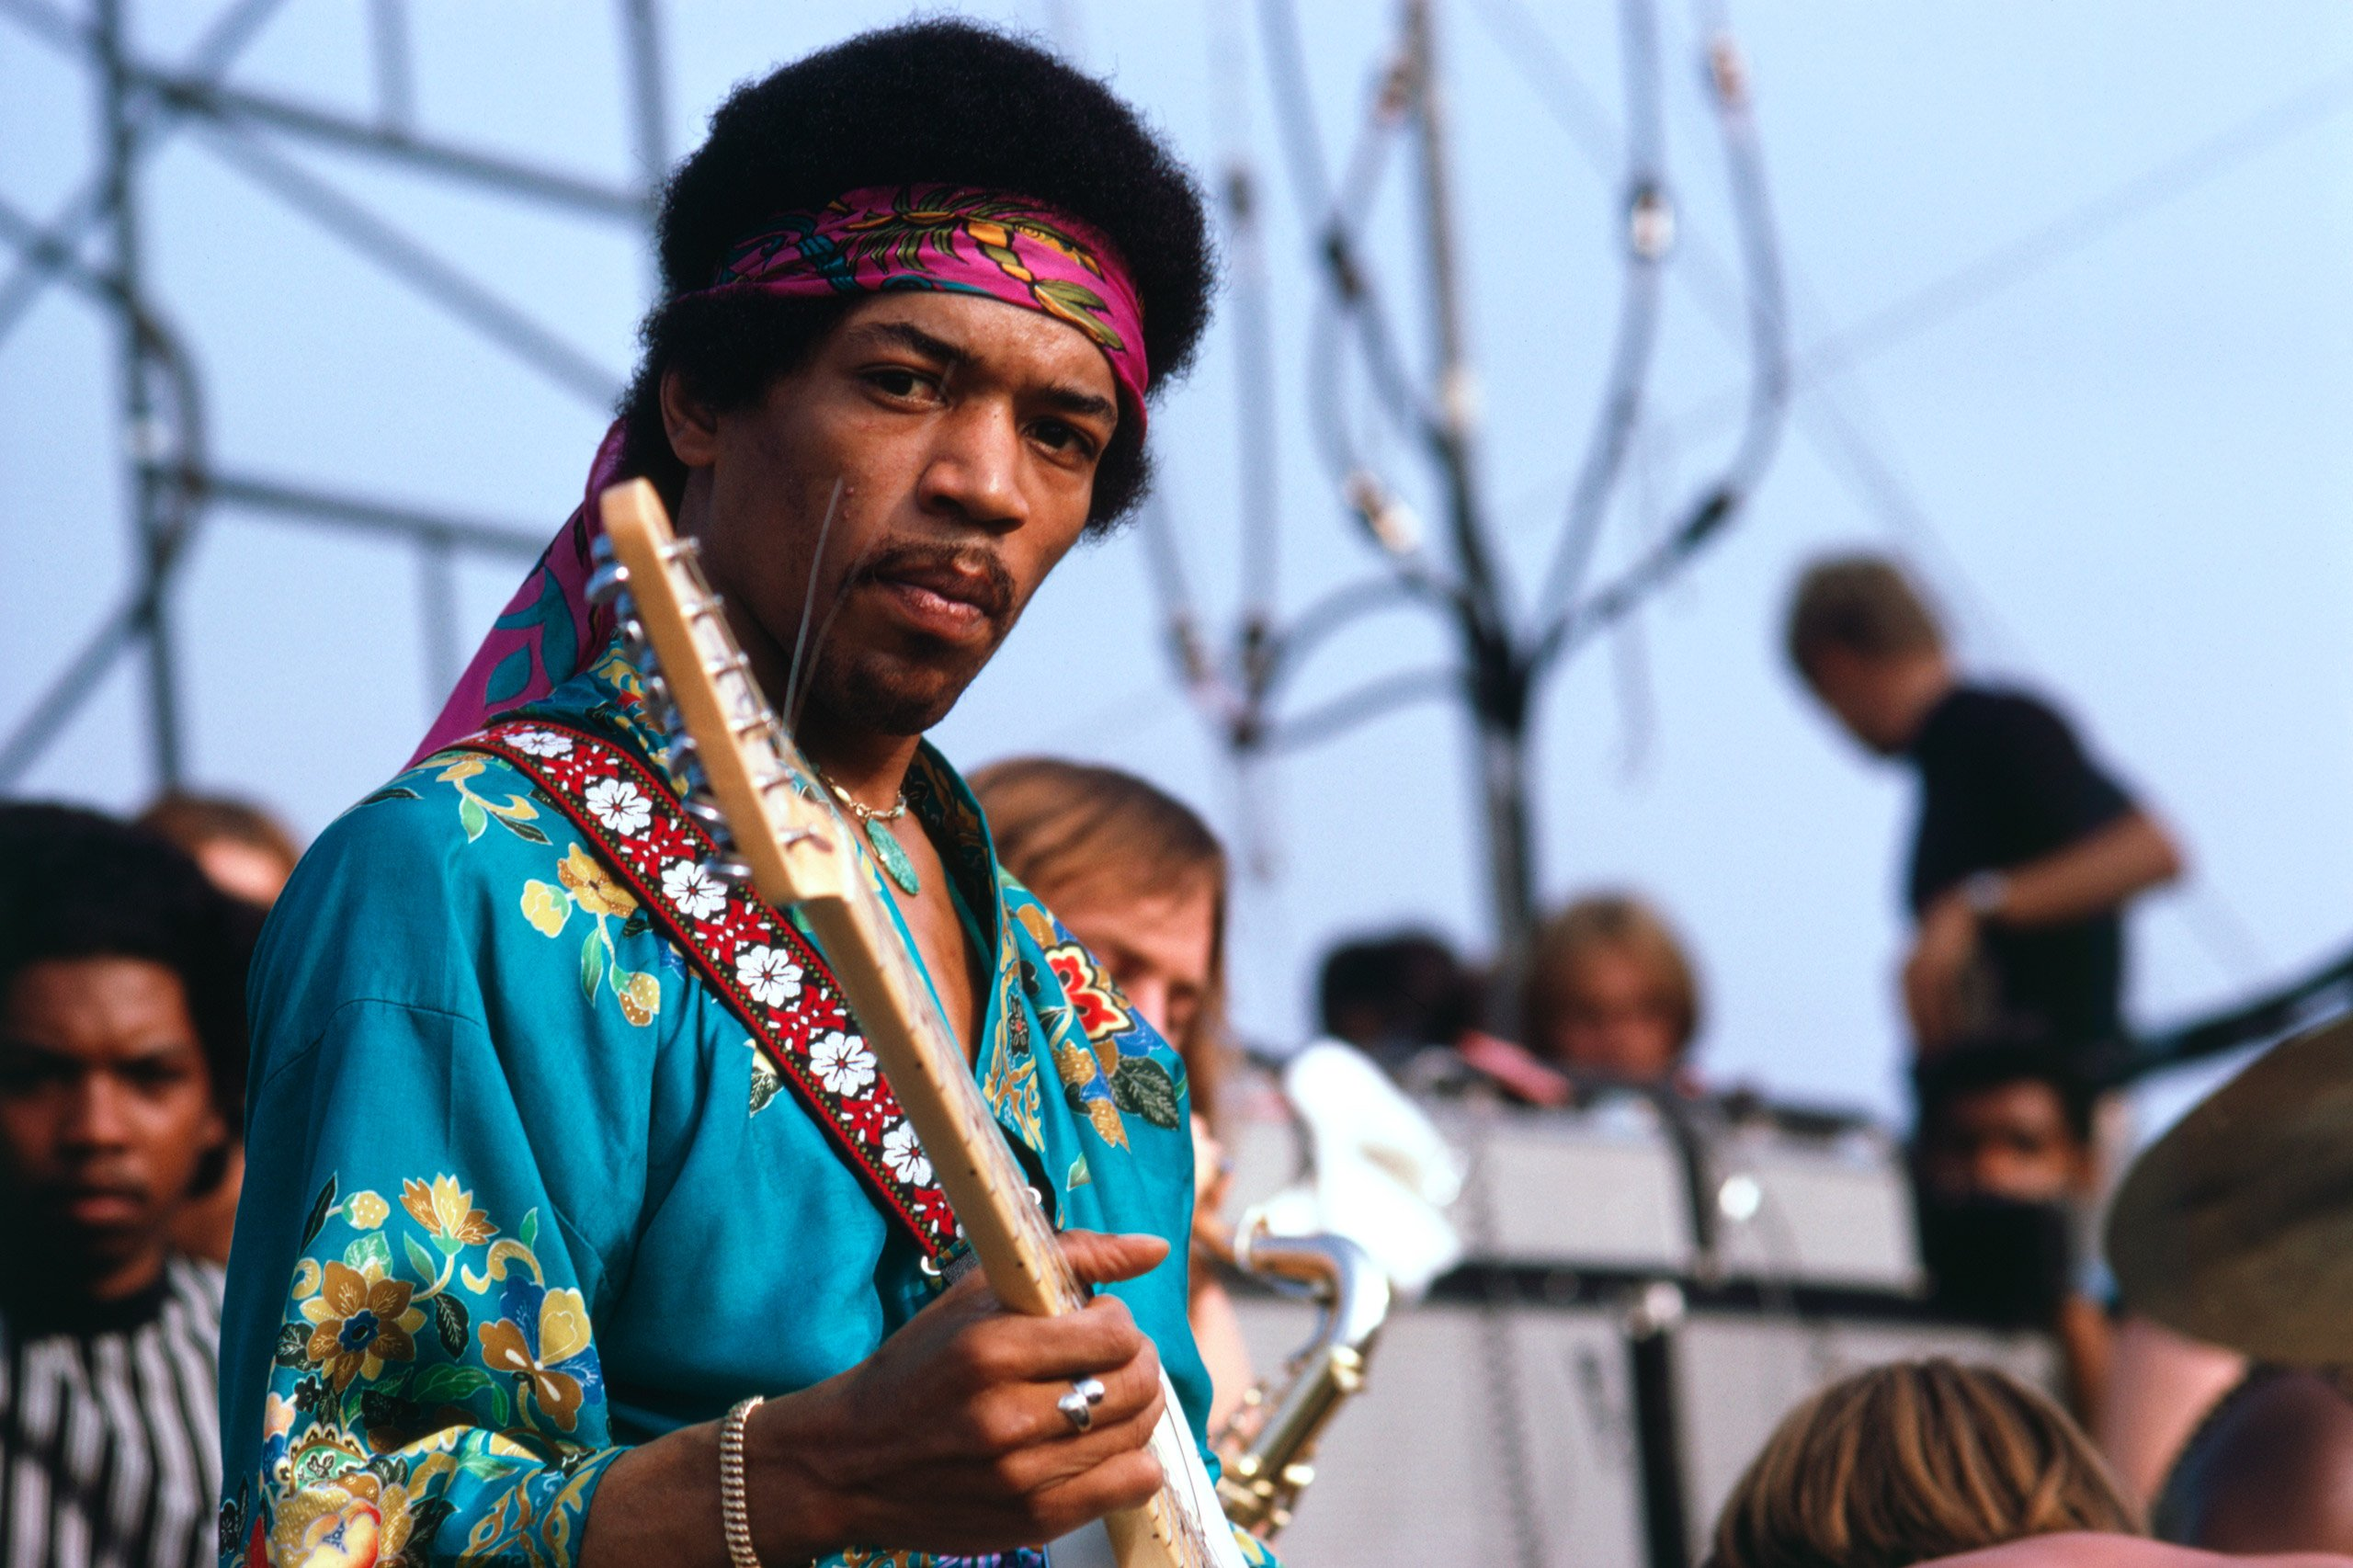 American singer-songwriter and guitarist Jimi Hendrix on stage at the Newport Pop Festival, Northridge, California, June 22, 1969.